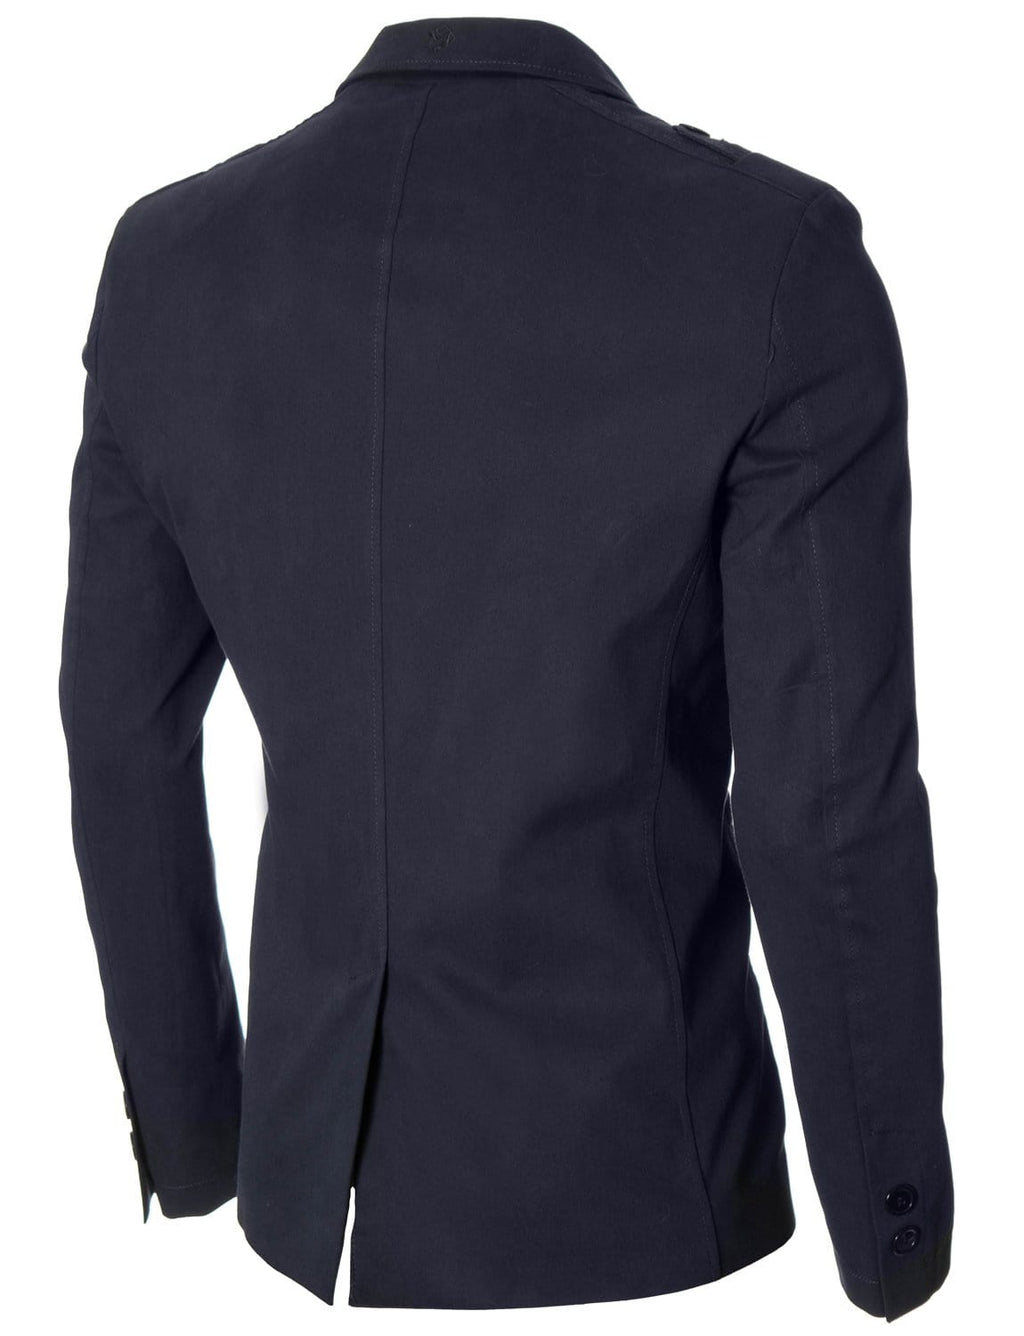 Mens slim fit casual blazer navy (MOD14518B)